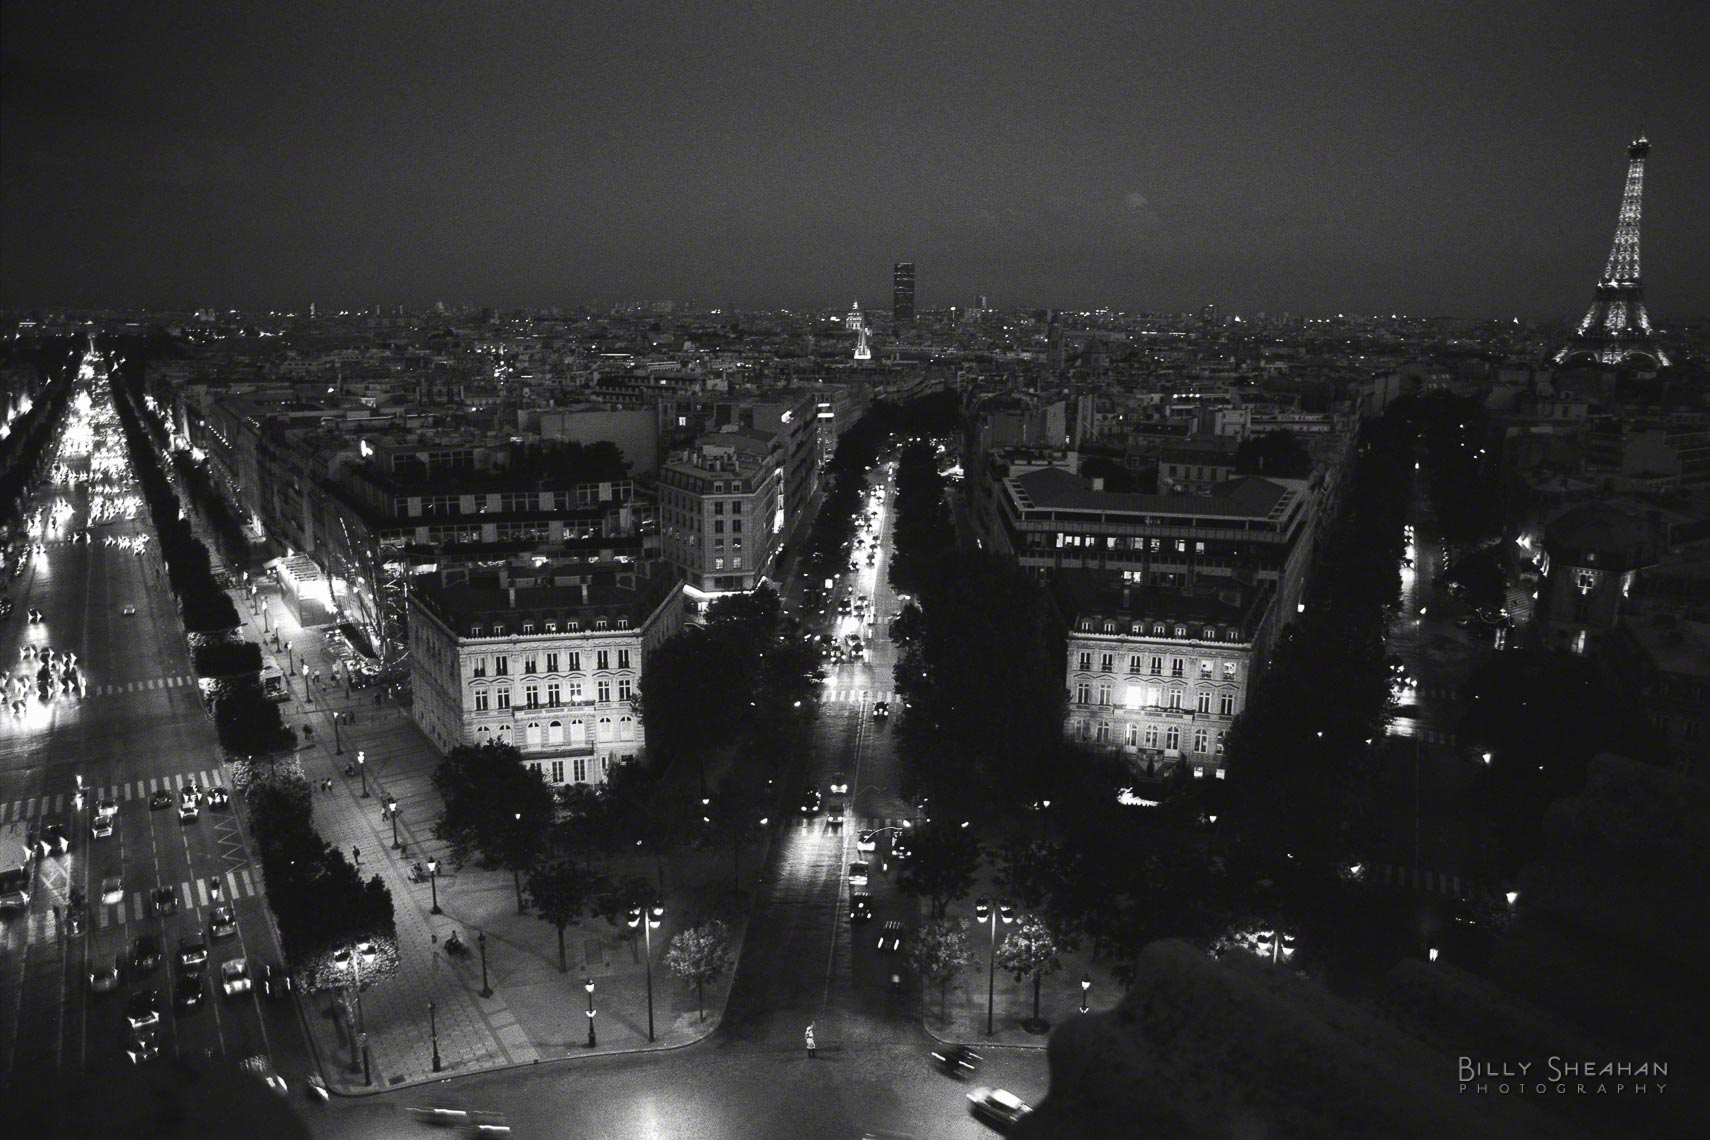 Avenue_des_Champs-Elysees_Tour_Eiffel_Night_Paris-1358_19_D.jpg